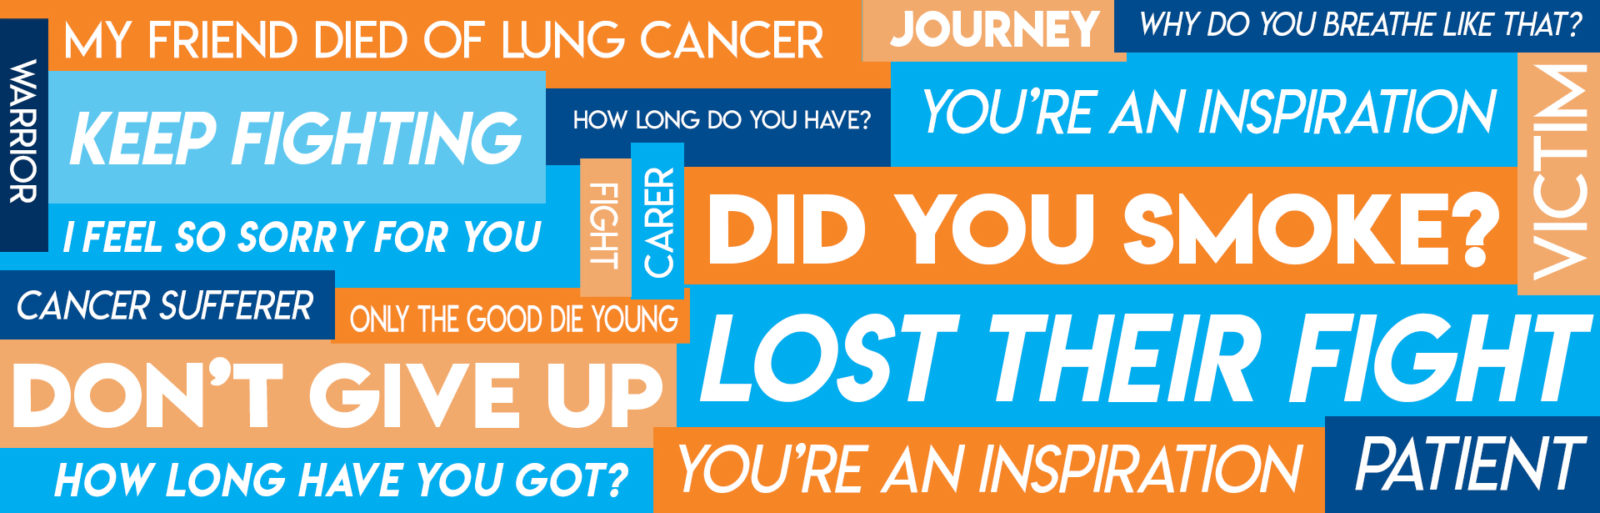 Top 10 most outrageous things said to someone with lung cancer